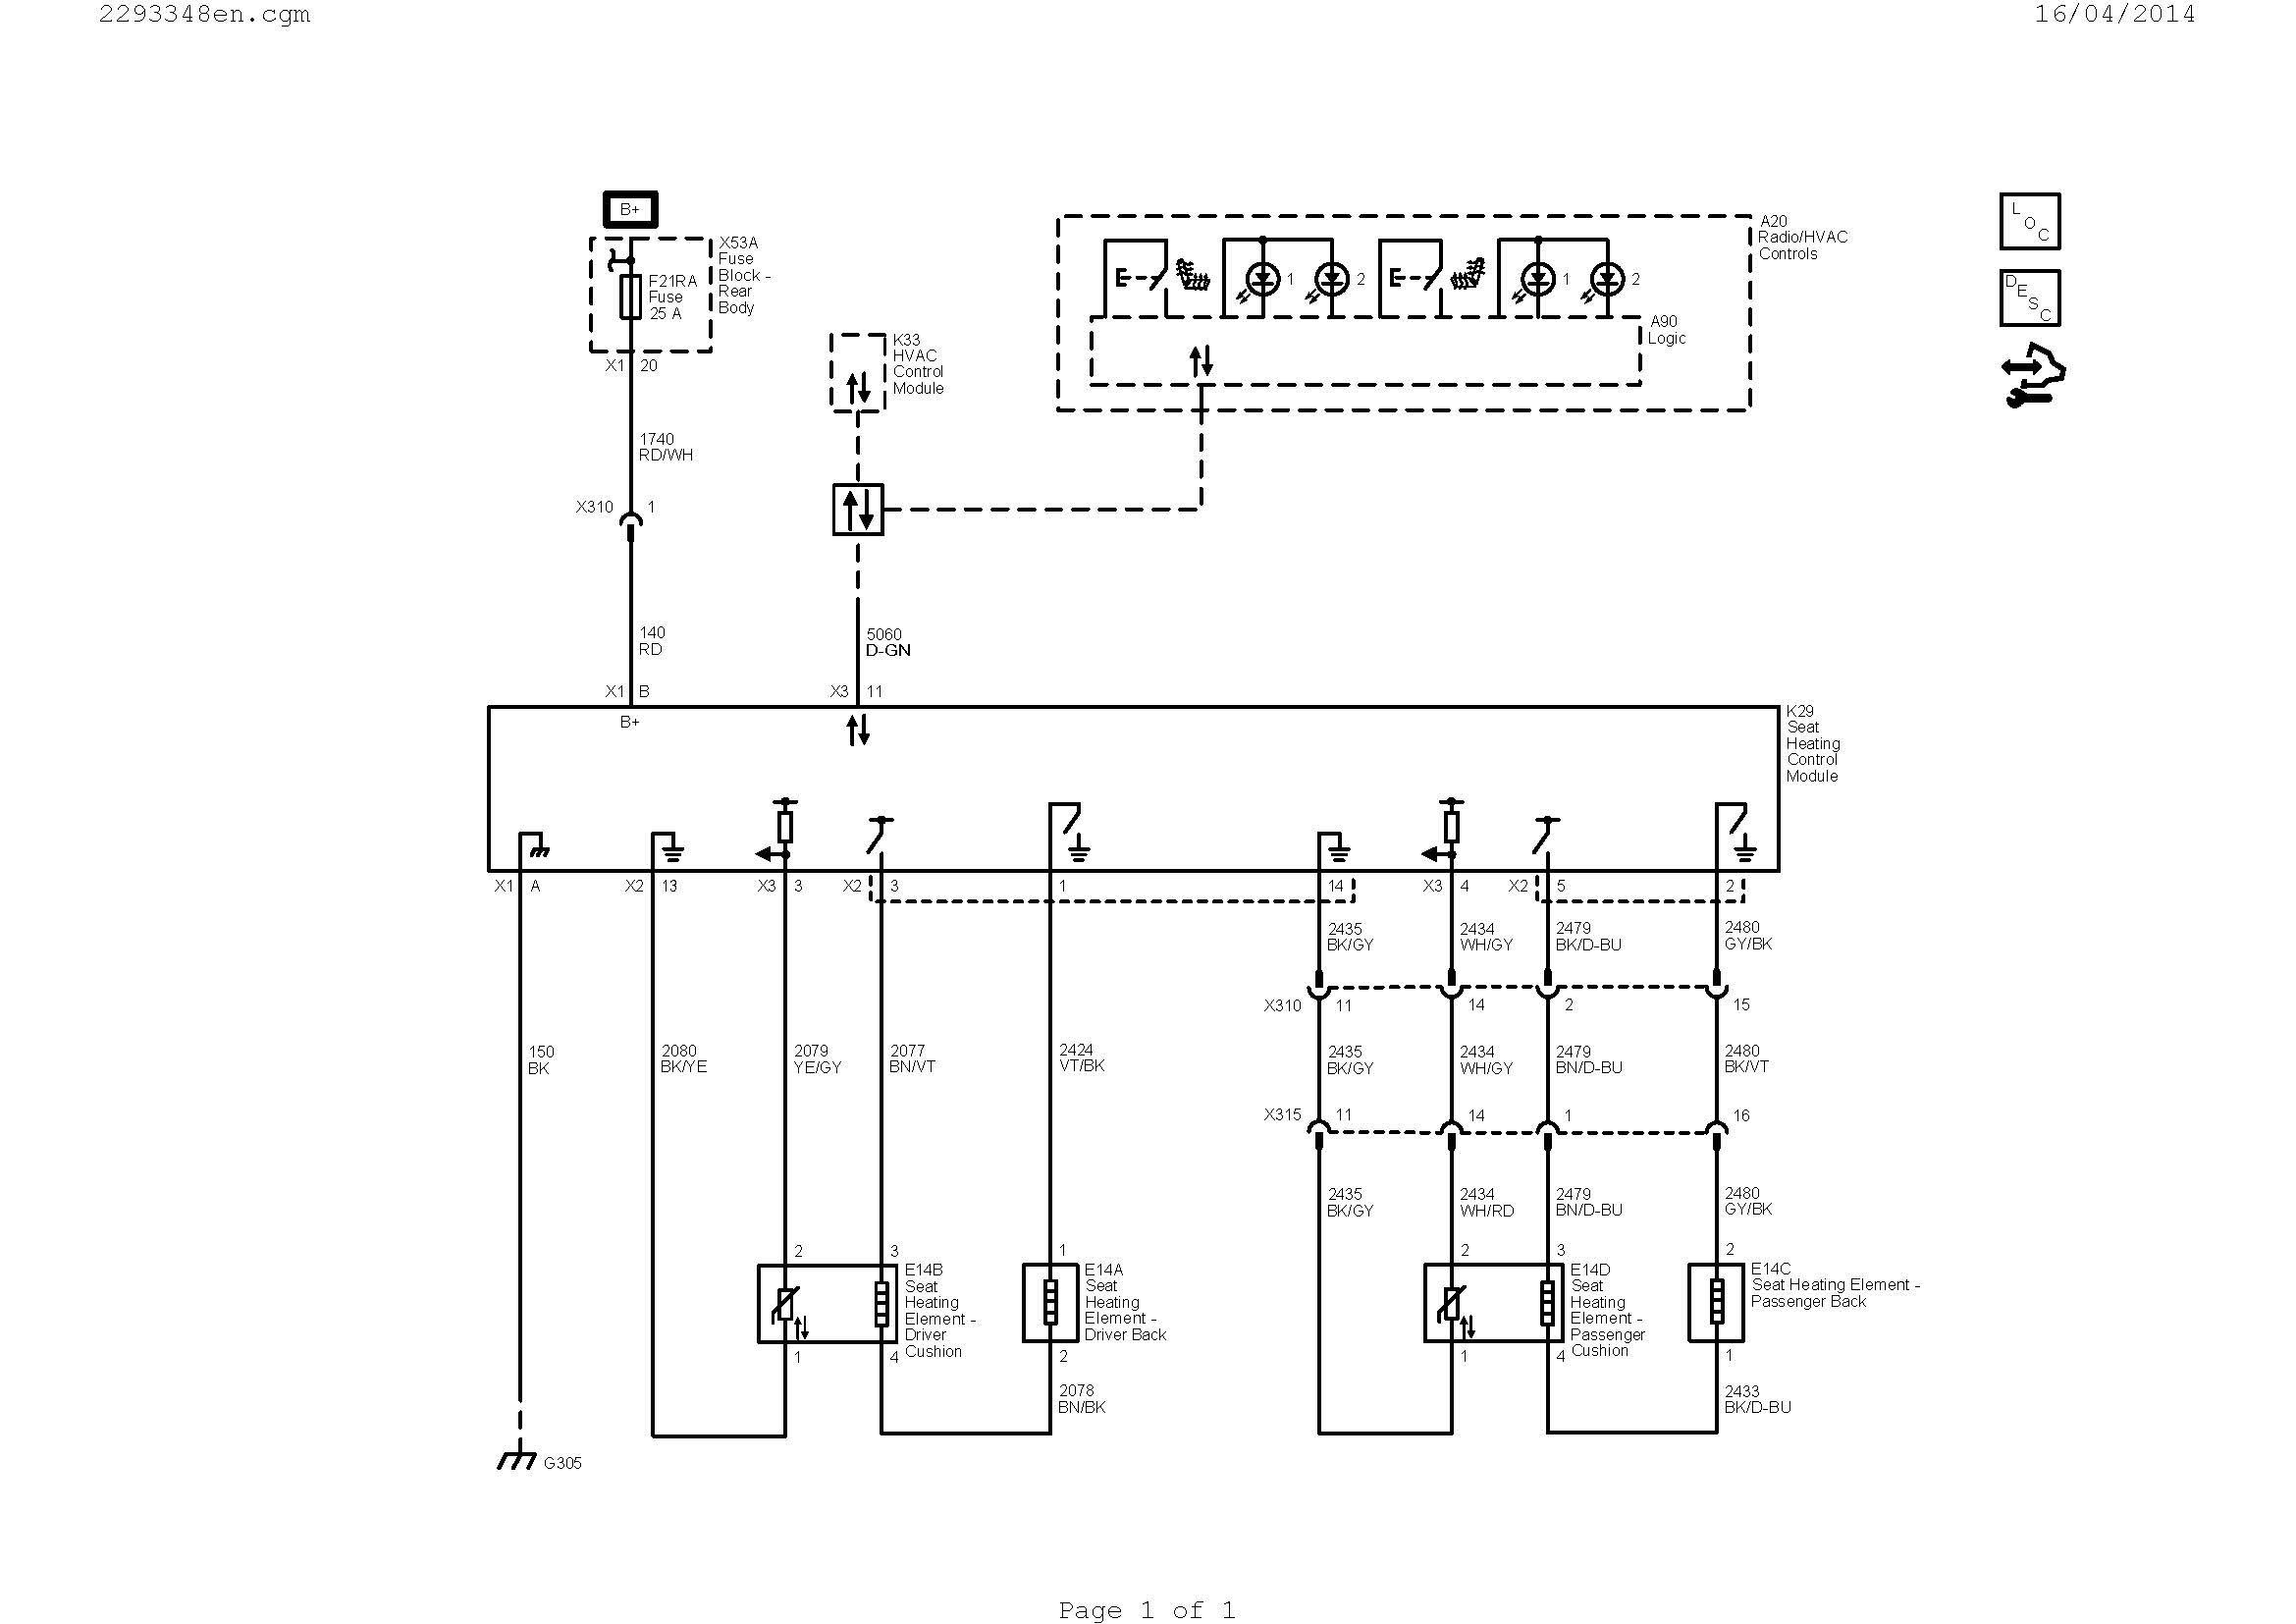 Gas Water Heater Parts Diagram Magic Chef 6498vra Gas Range ... on magic chef model numbers, magic chef gas stove, magic chef microwave, magic chef wall oven parts, magic chef serial numbers, magic chef heat pump, magic chef oven heating element, furnace fan motor wiring diagram, magic chef refrigerator model mcbr1020w, magic chef double wall oven, magic chef gas wall oven,